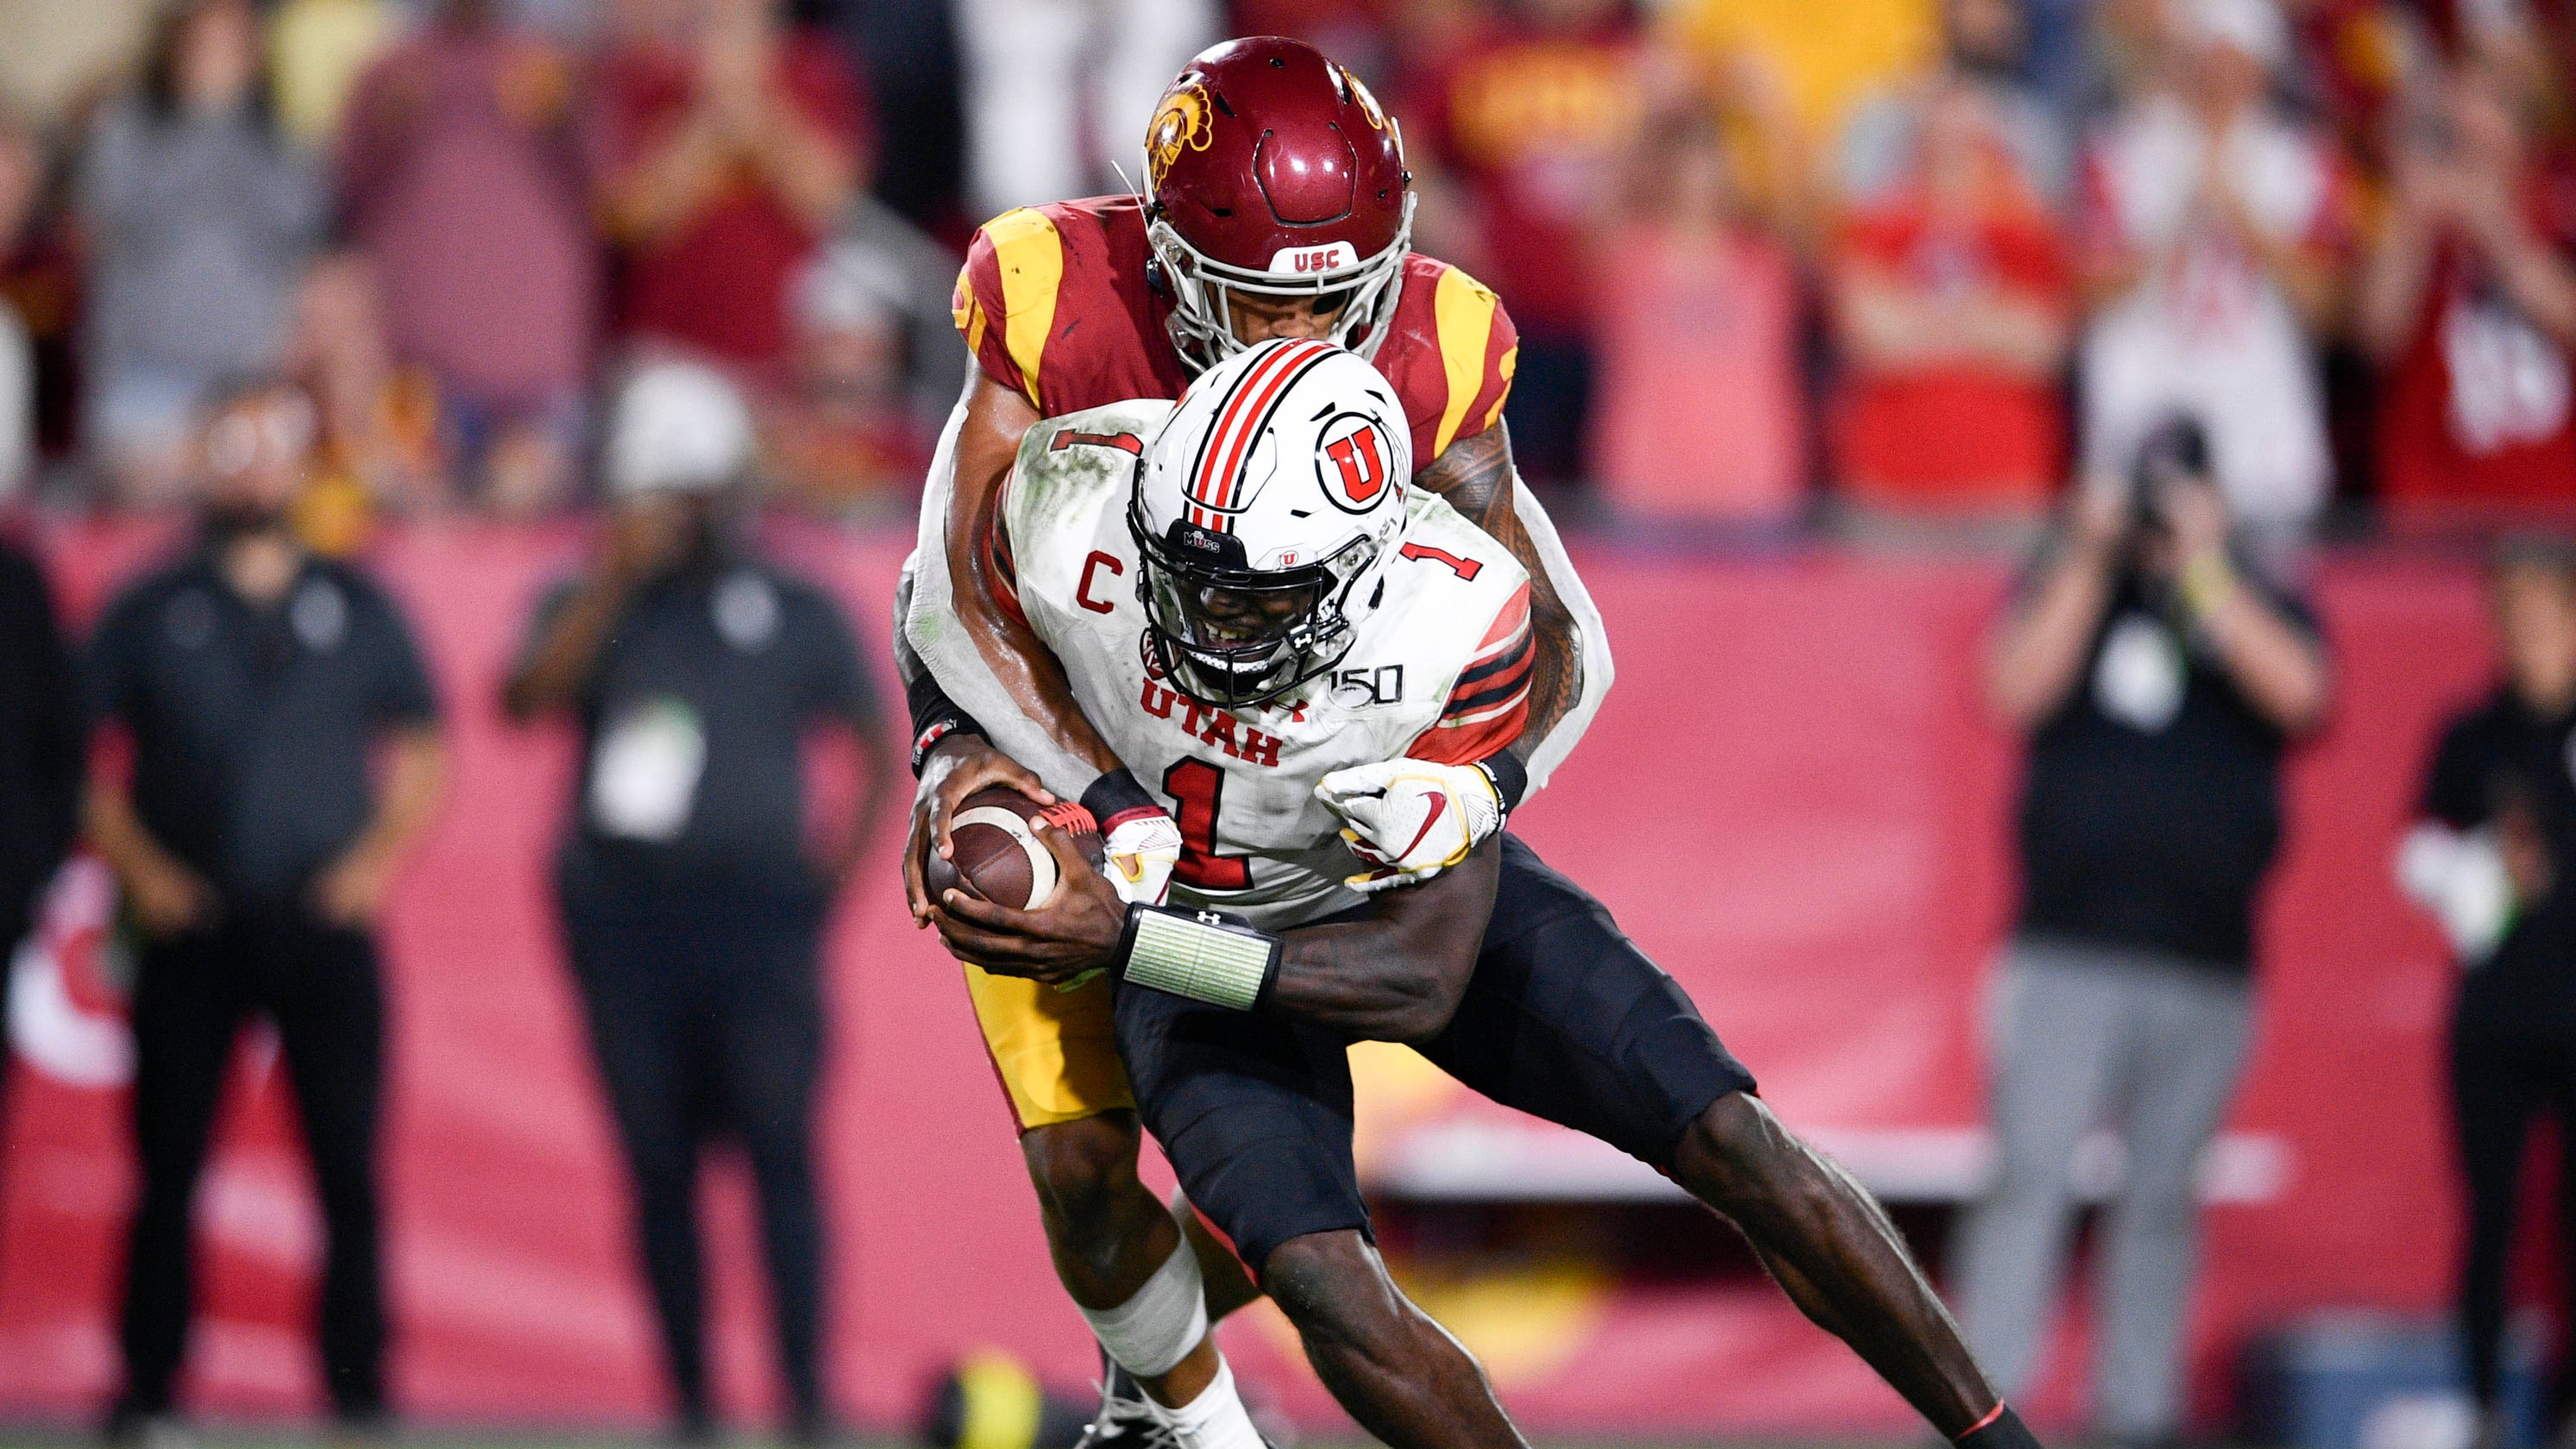 super popular bd0a2 4f999 Pac-12 football power rankings: Utah loss to USC lifts ...